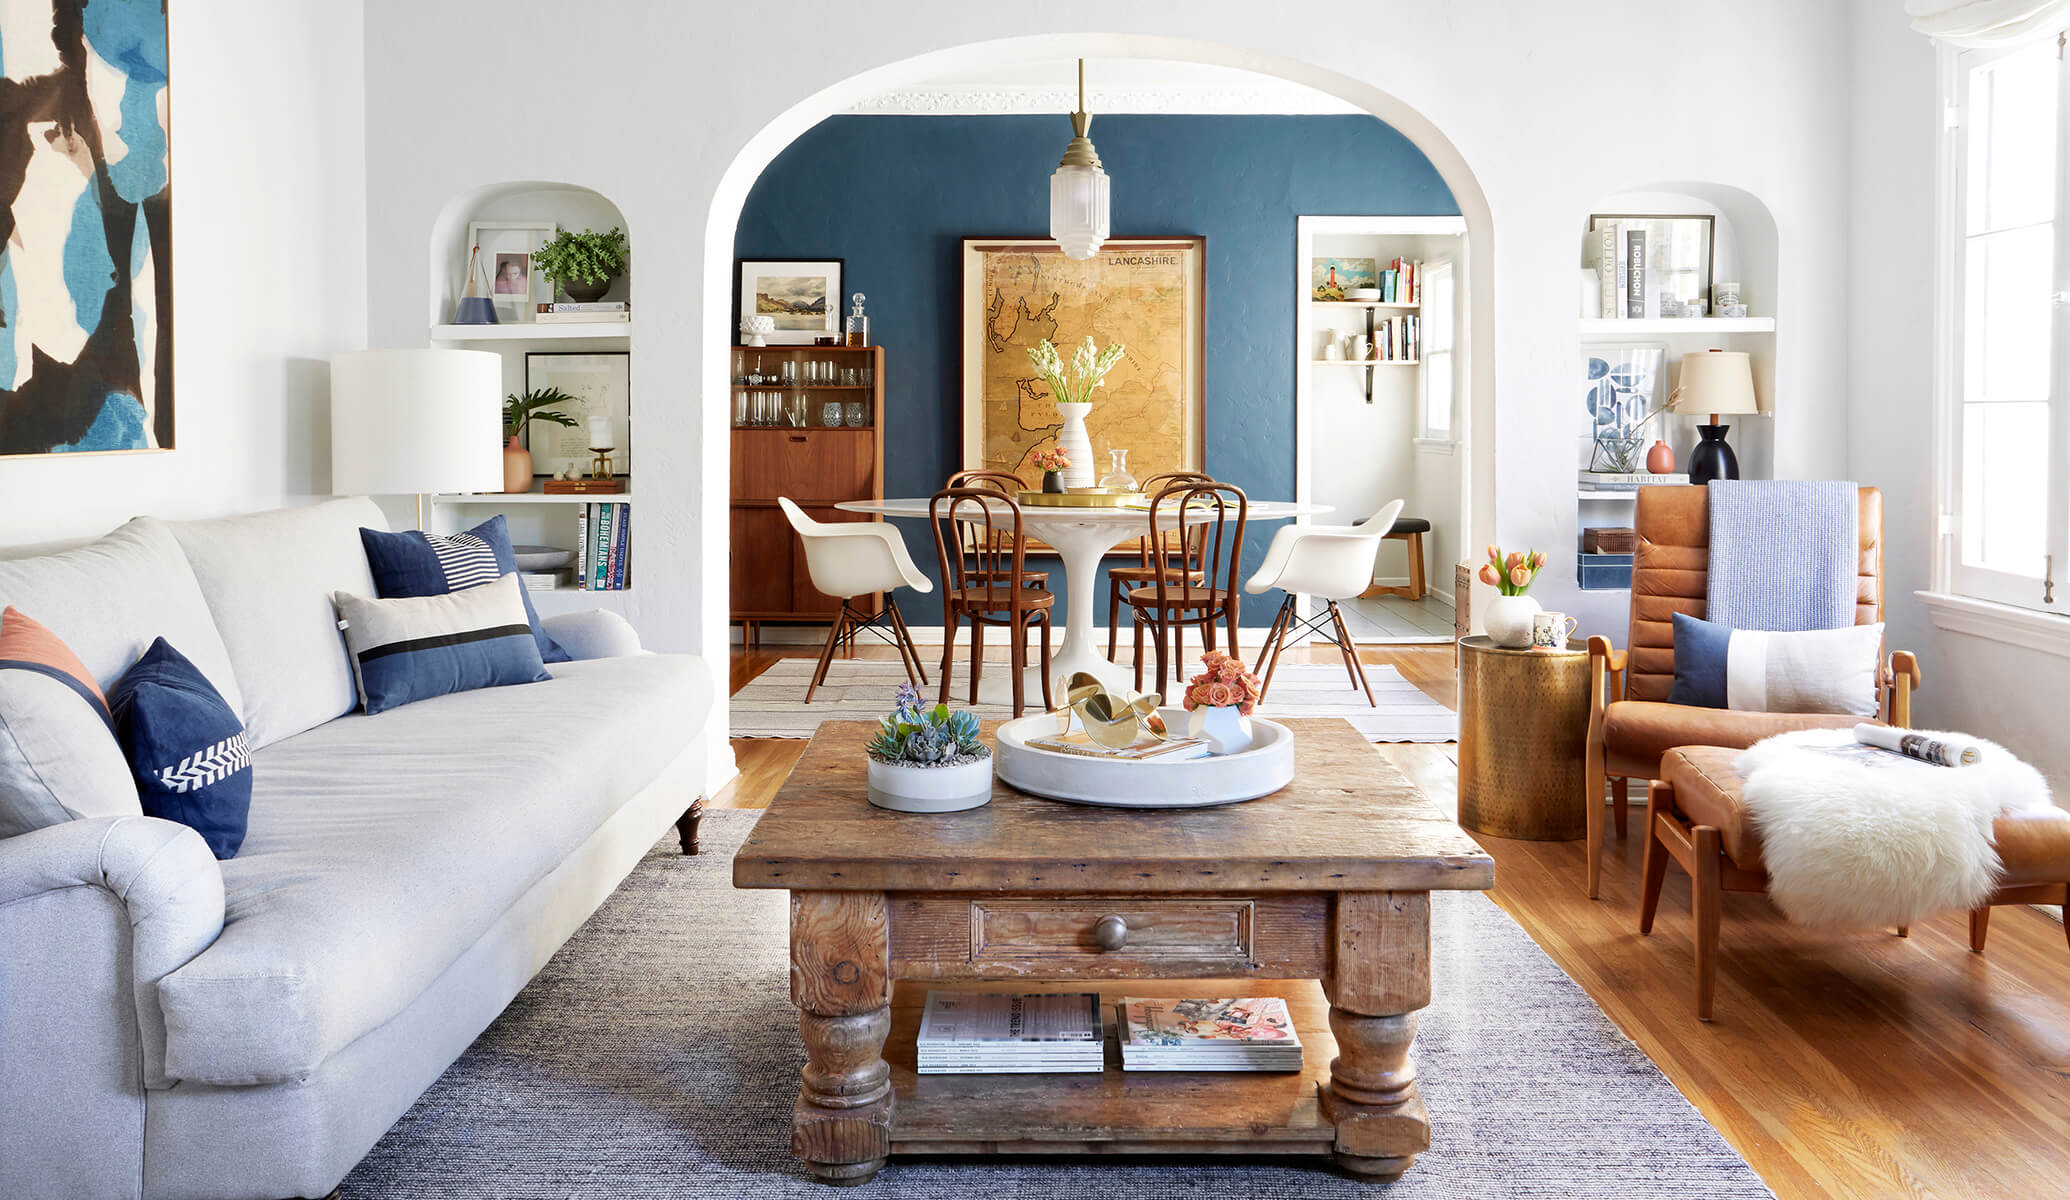 GINNY_MACDONALD_LIVING_ROOM_FEATURED IMAGE 2070X1200 LORES